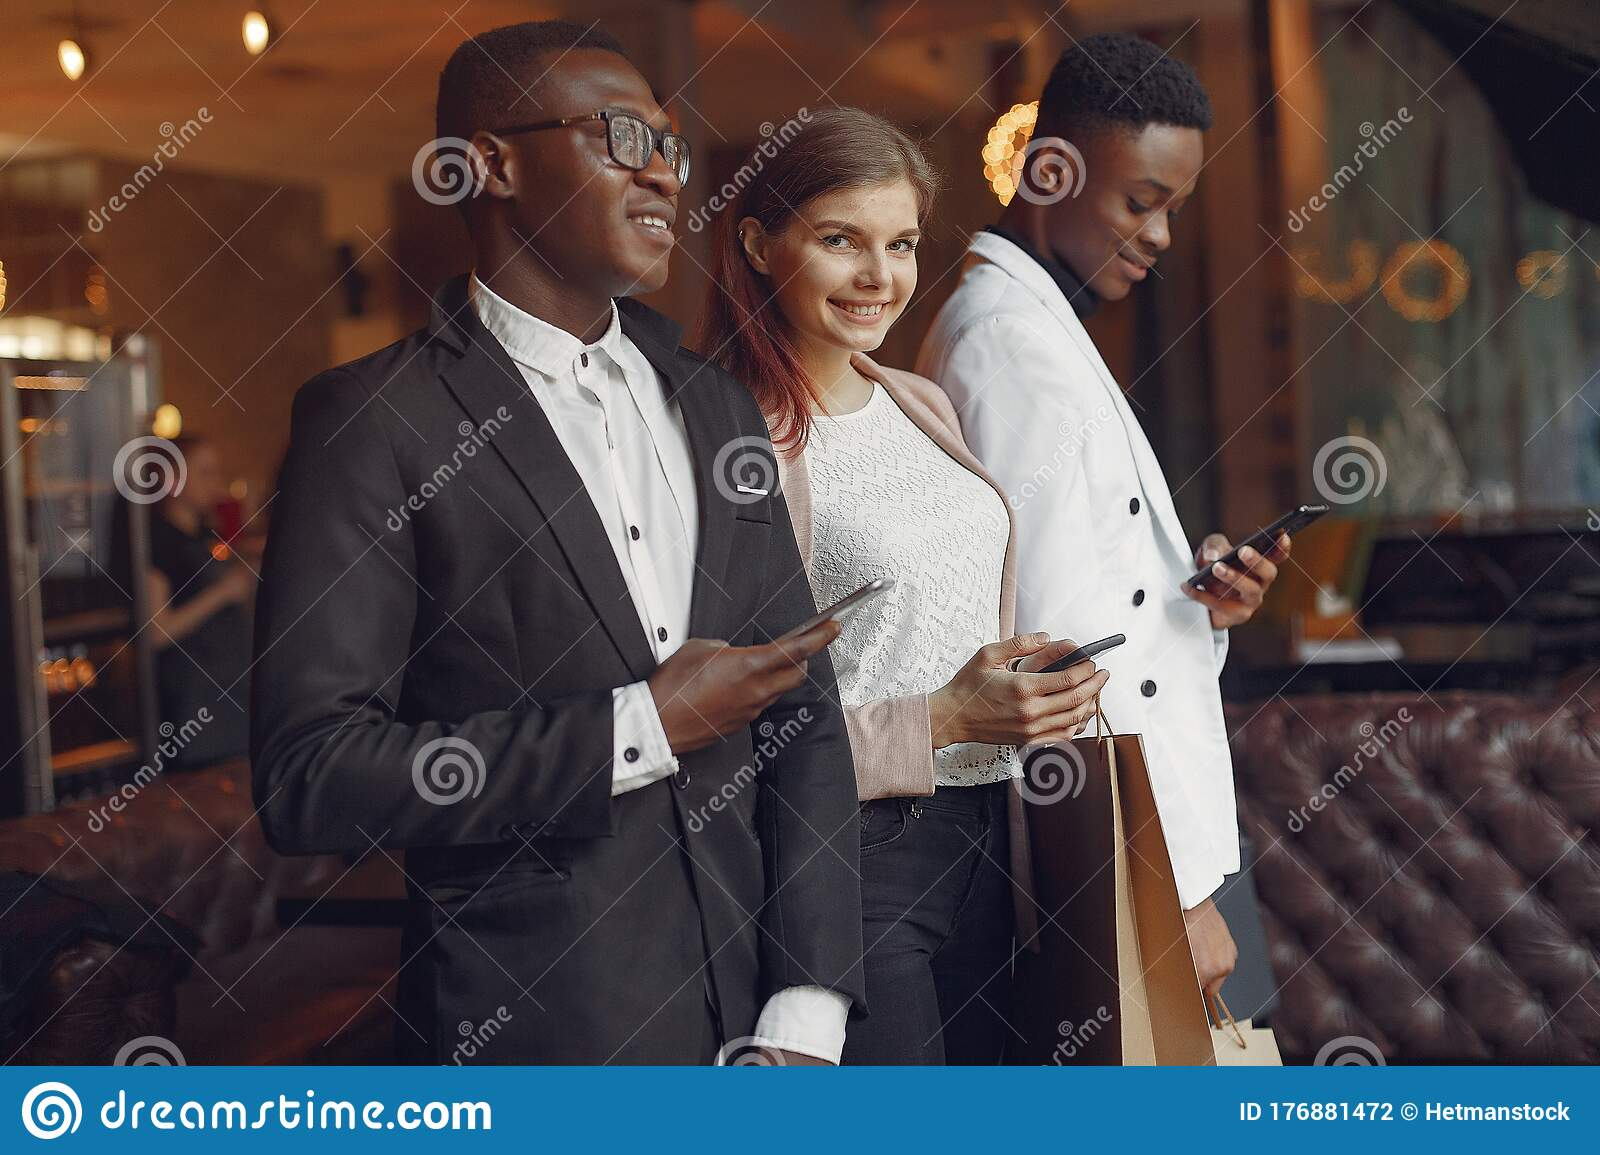 Internationals People Standing In A Cafe With Shopping Bags Stock Photo Image Of Nationality Model 176881472